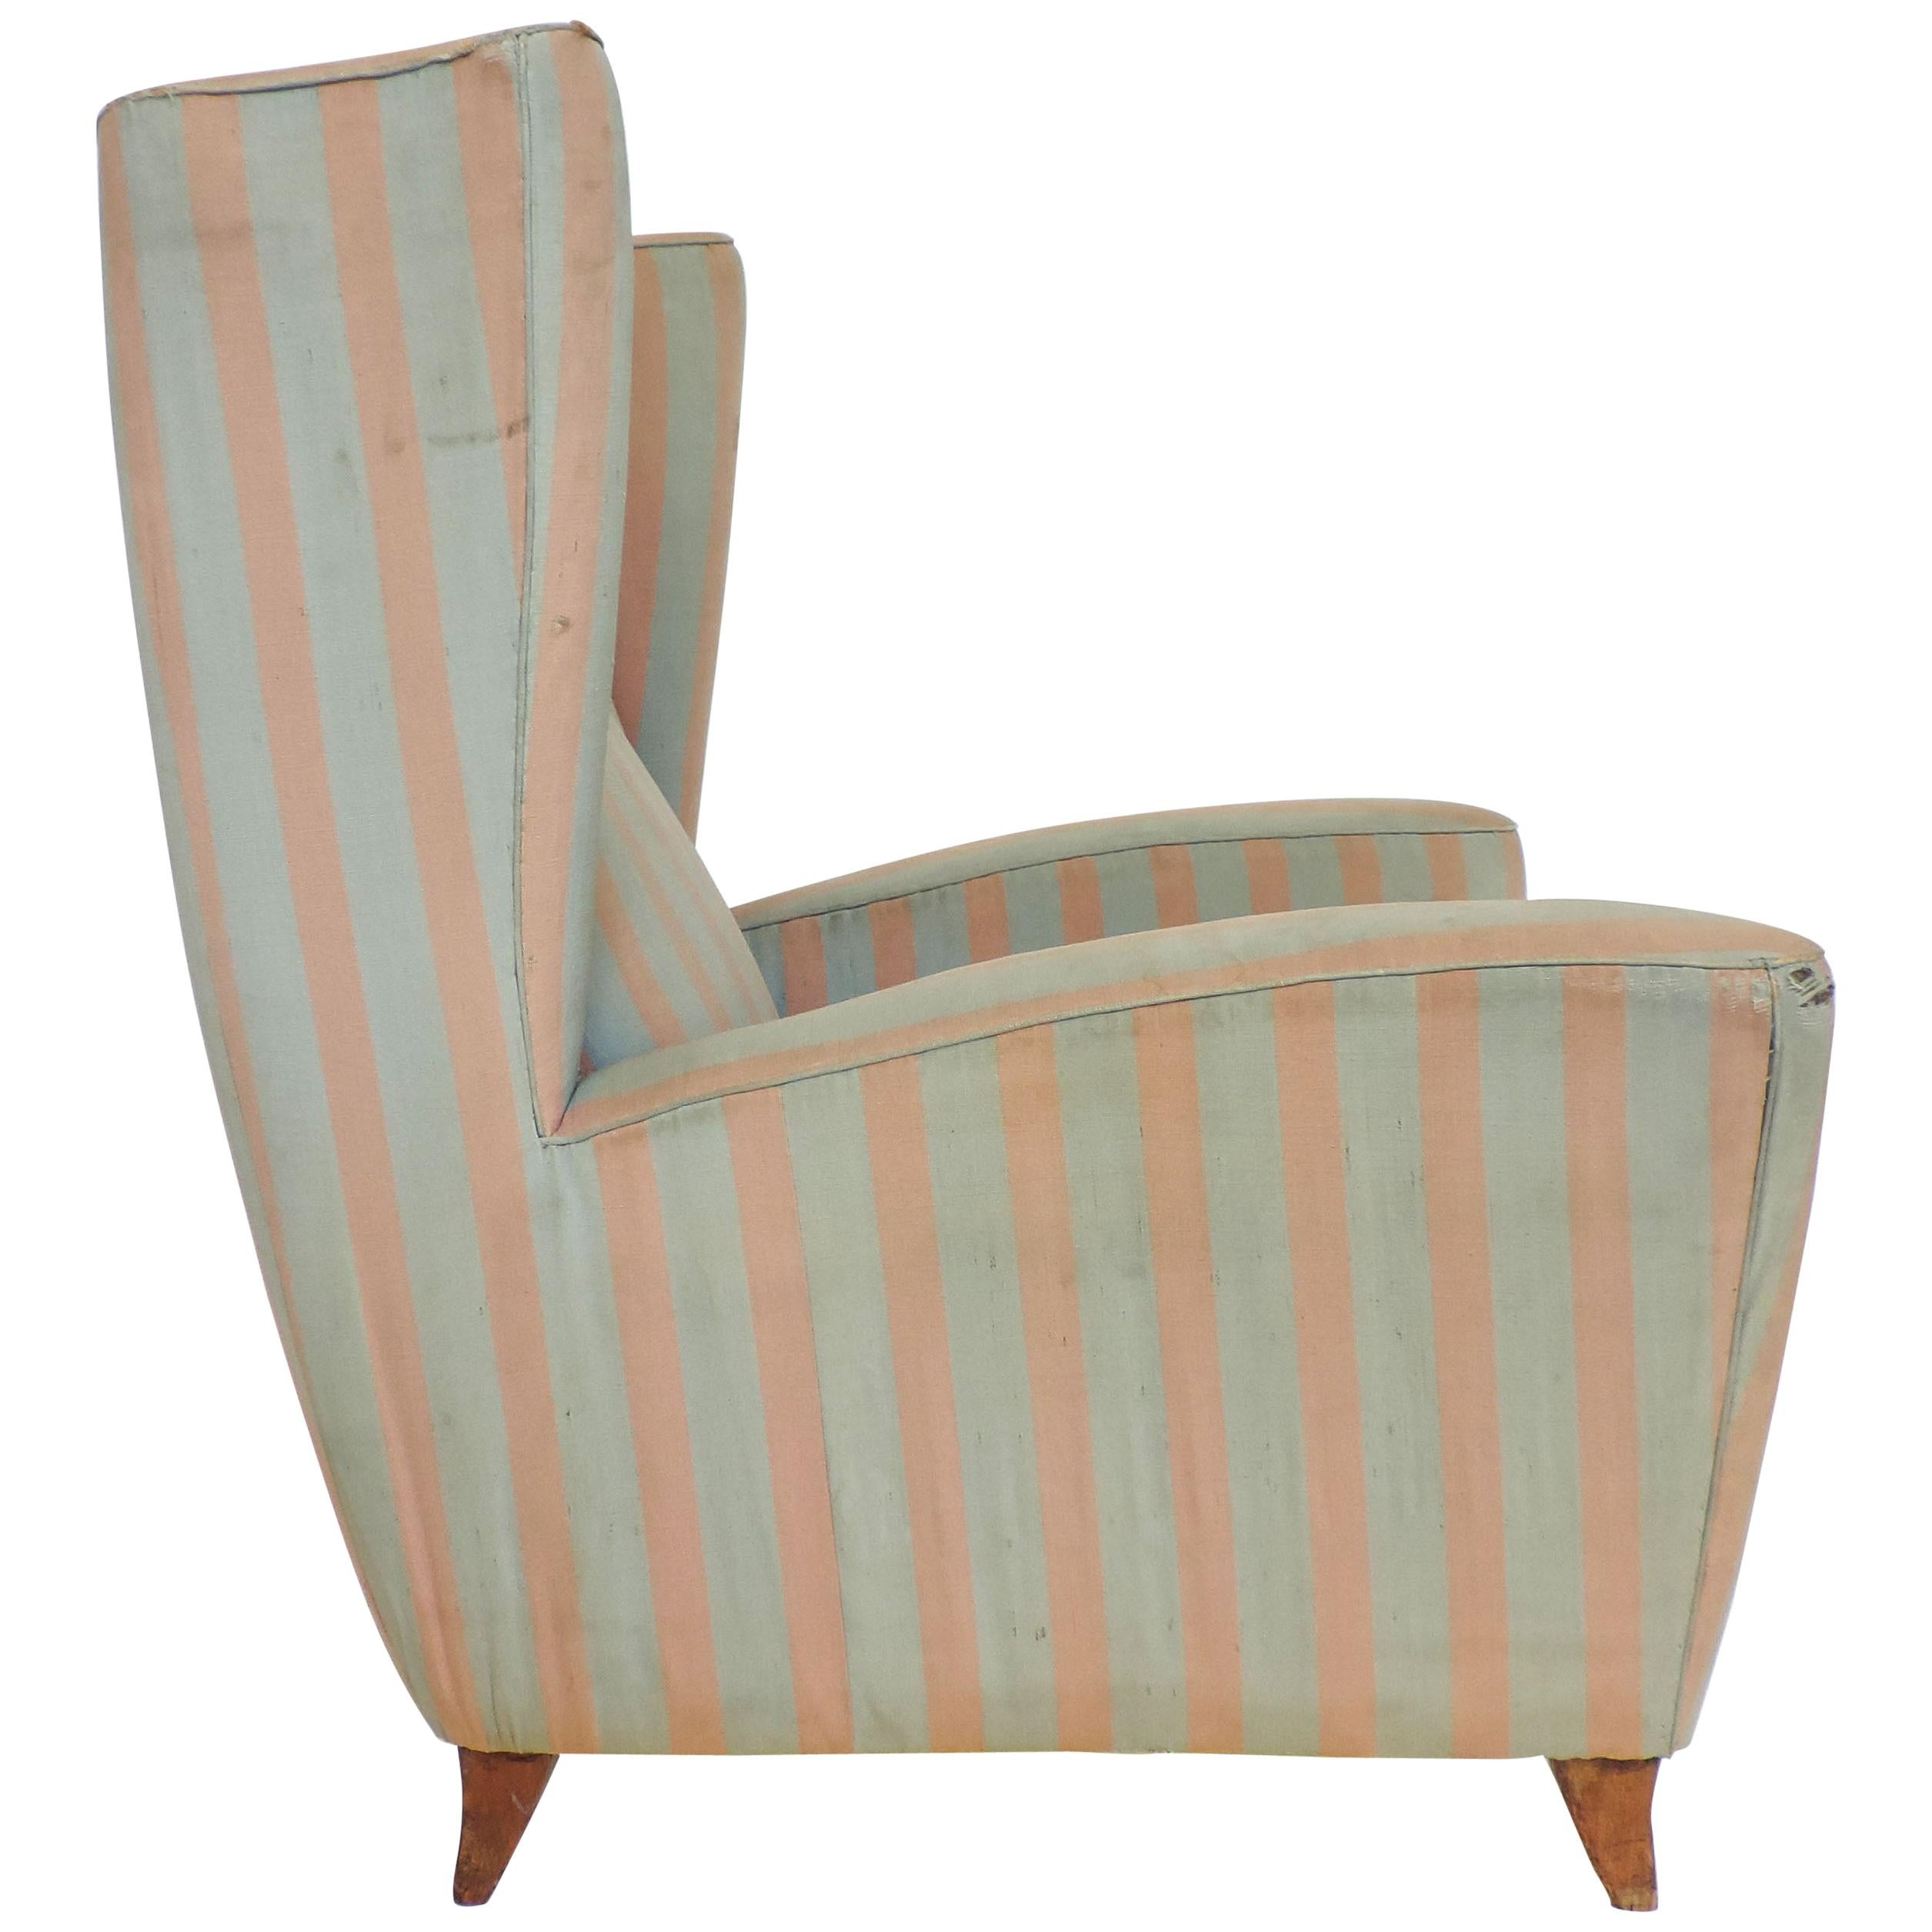 Paolo Buffa 1940s Armchair in Original Pink and Light Grey Stripes Fabric